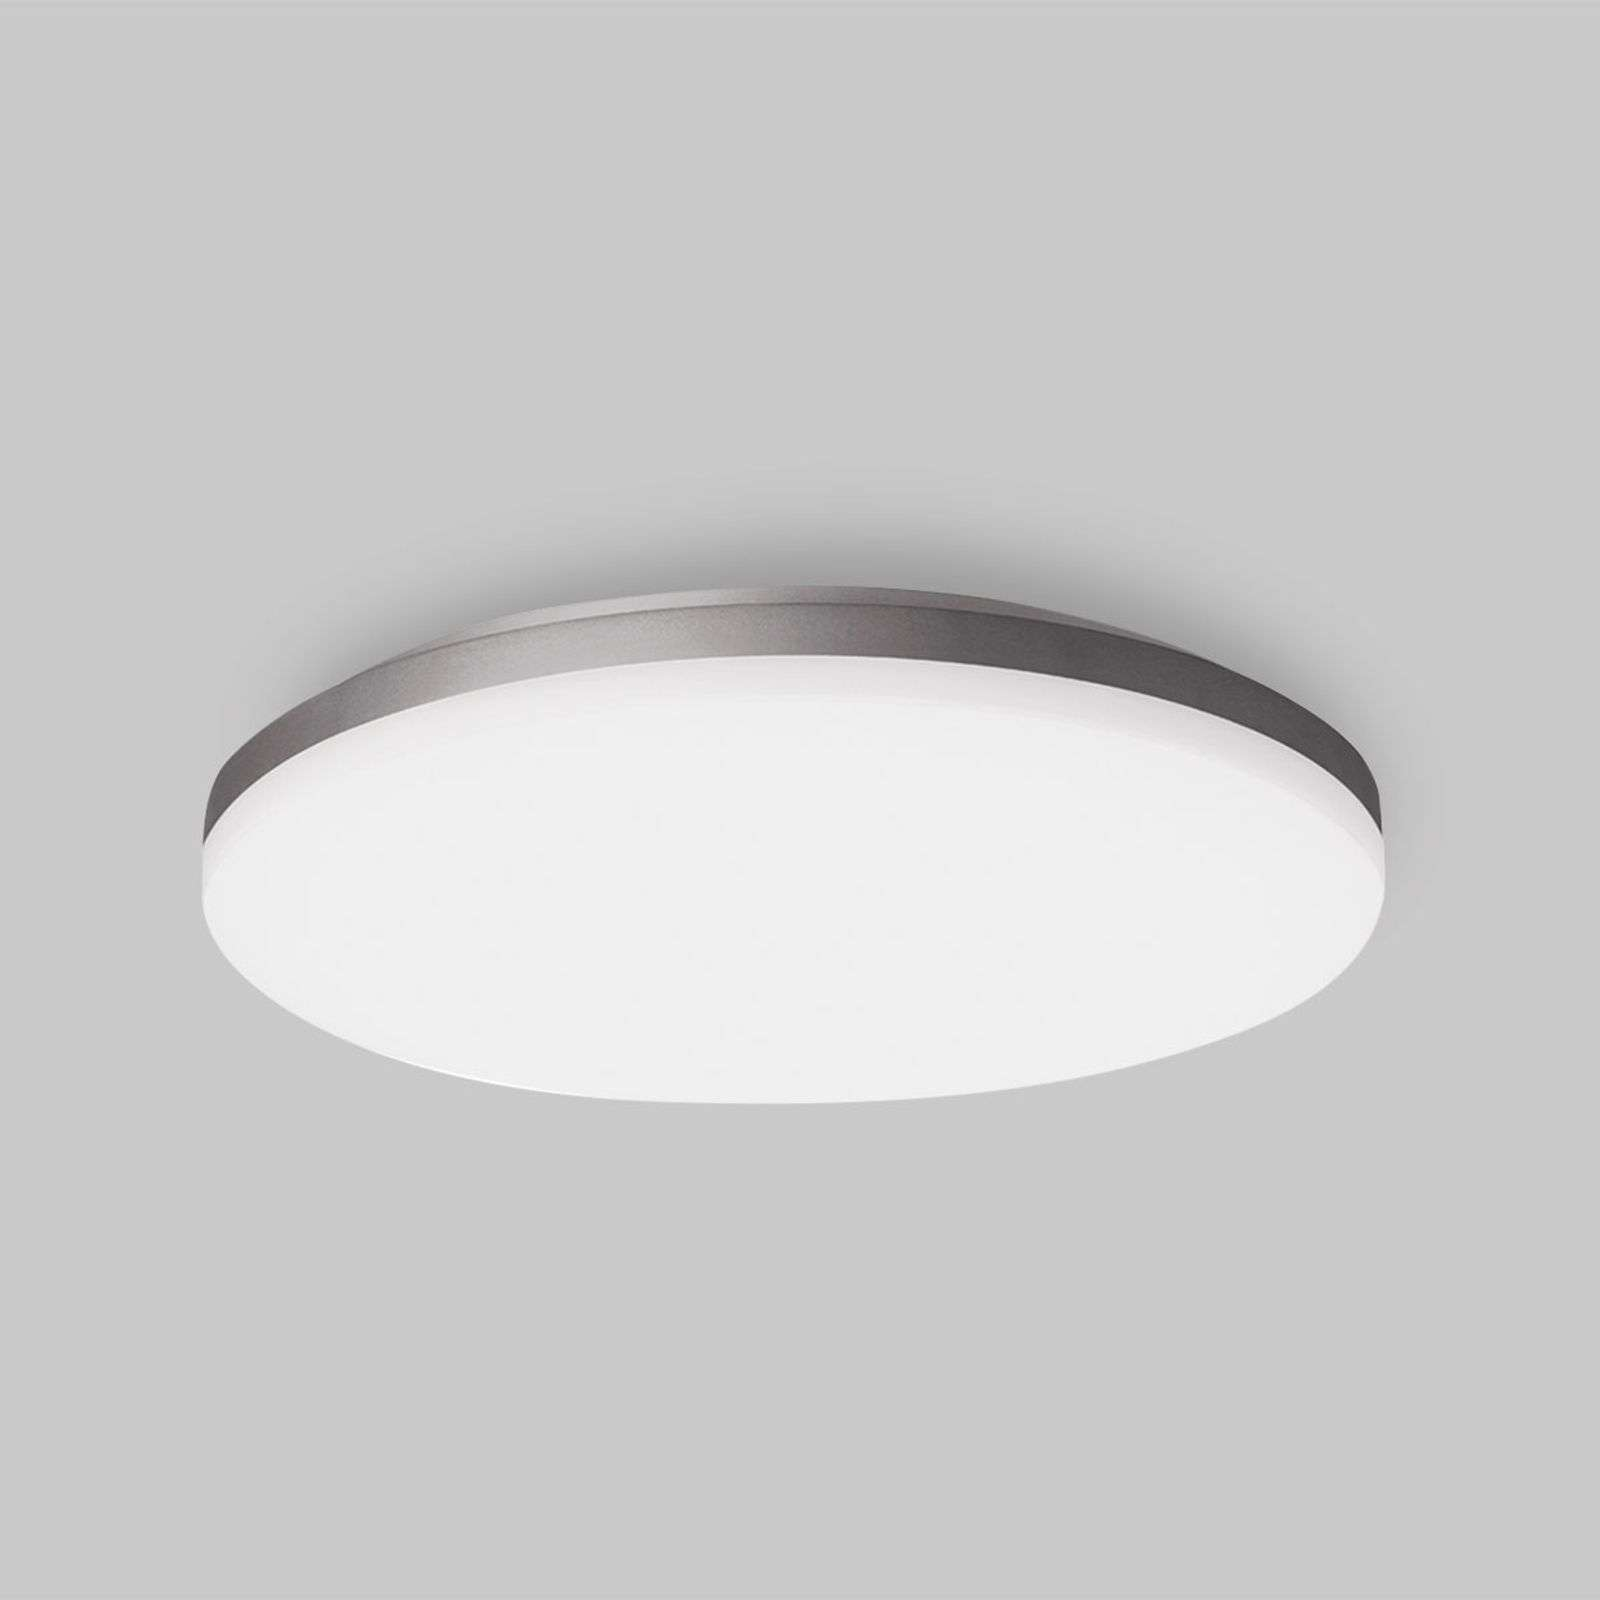 Applique LED WL220 opale 2x59° 3 000 K